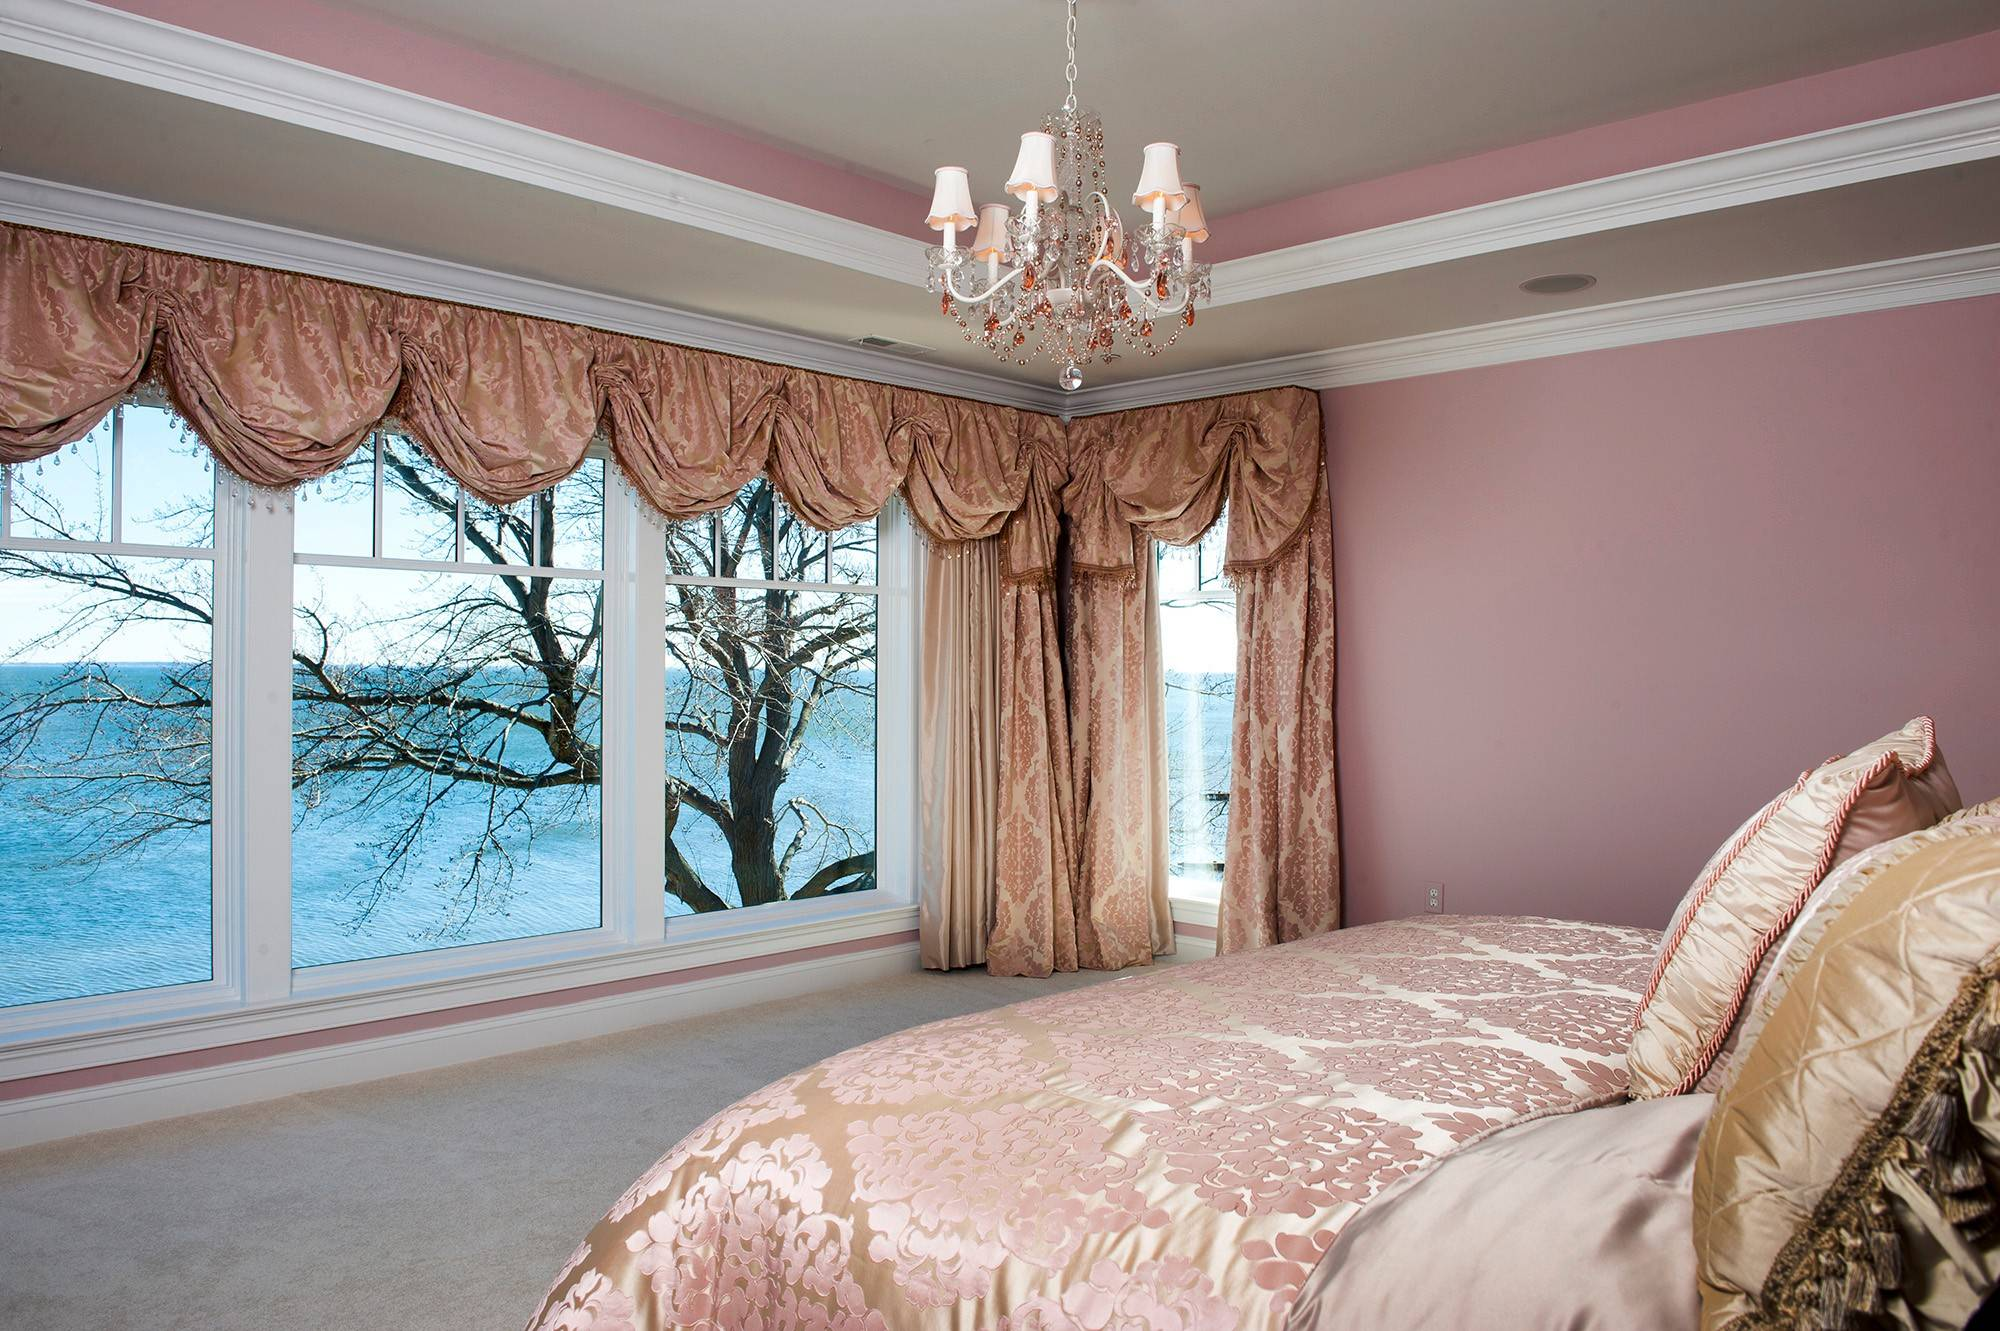 The McSweeny's master bedroom has ample room to maneuver a wheelchair if needed in the future; floor to ceiling windows bring in natural light and offer sweeping views of the Chesapeake Bay.